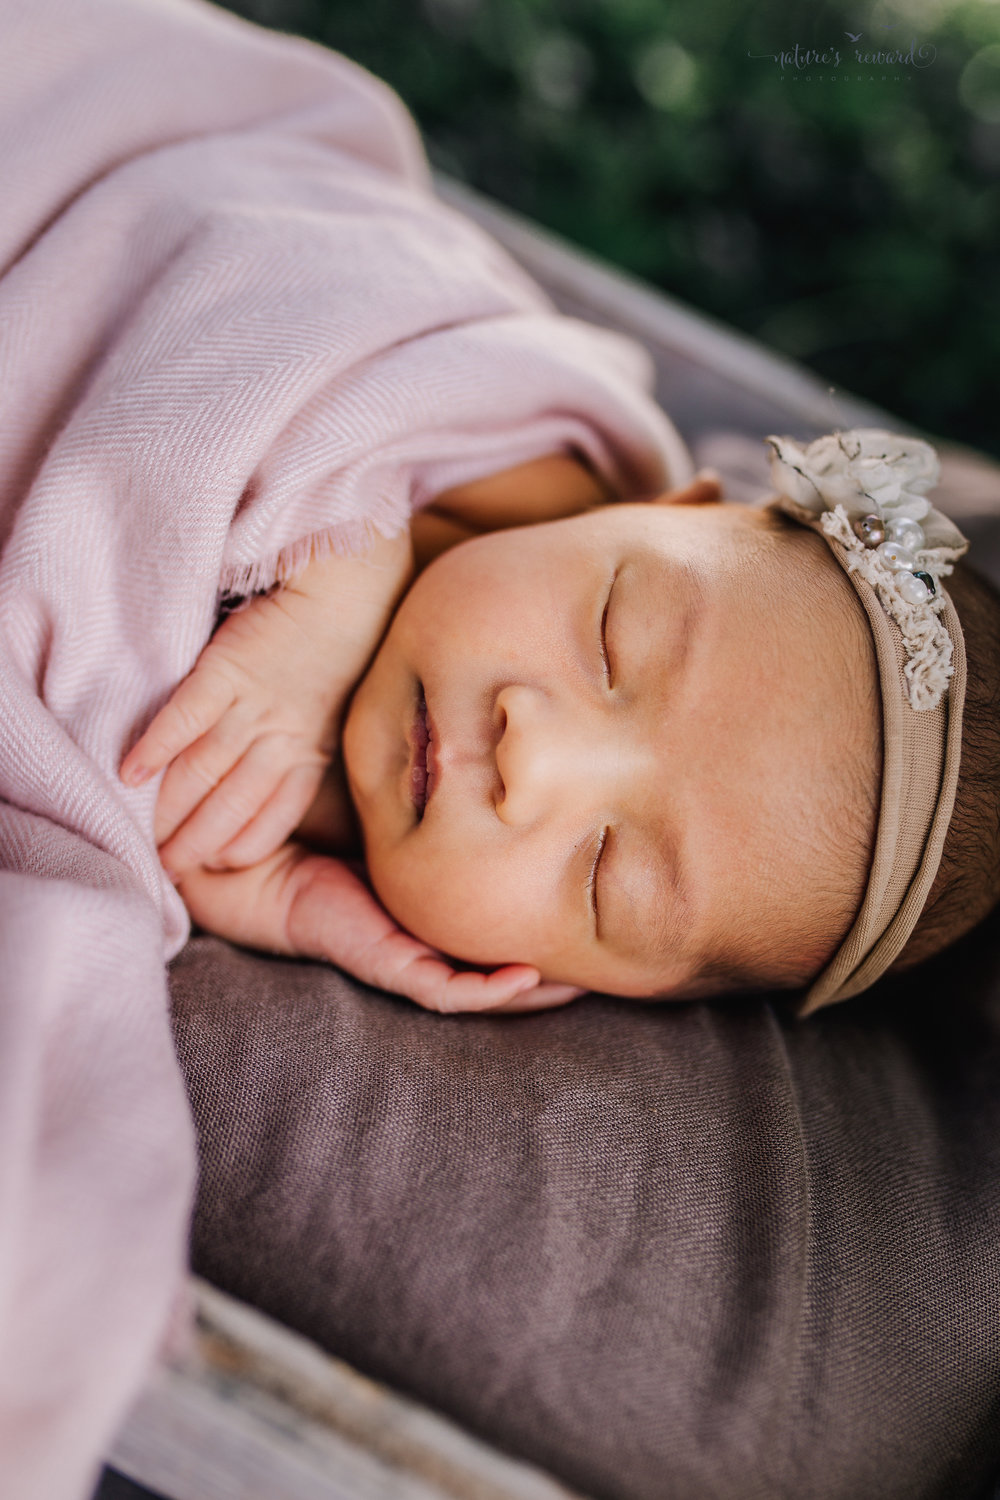 Lovely baby newborn girl with a pink blanket wearing a white tie back and in a garden surrounded by lush greens in this portrait by Nature's Reward Photography